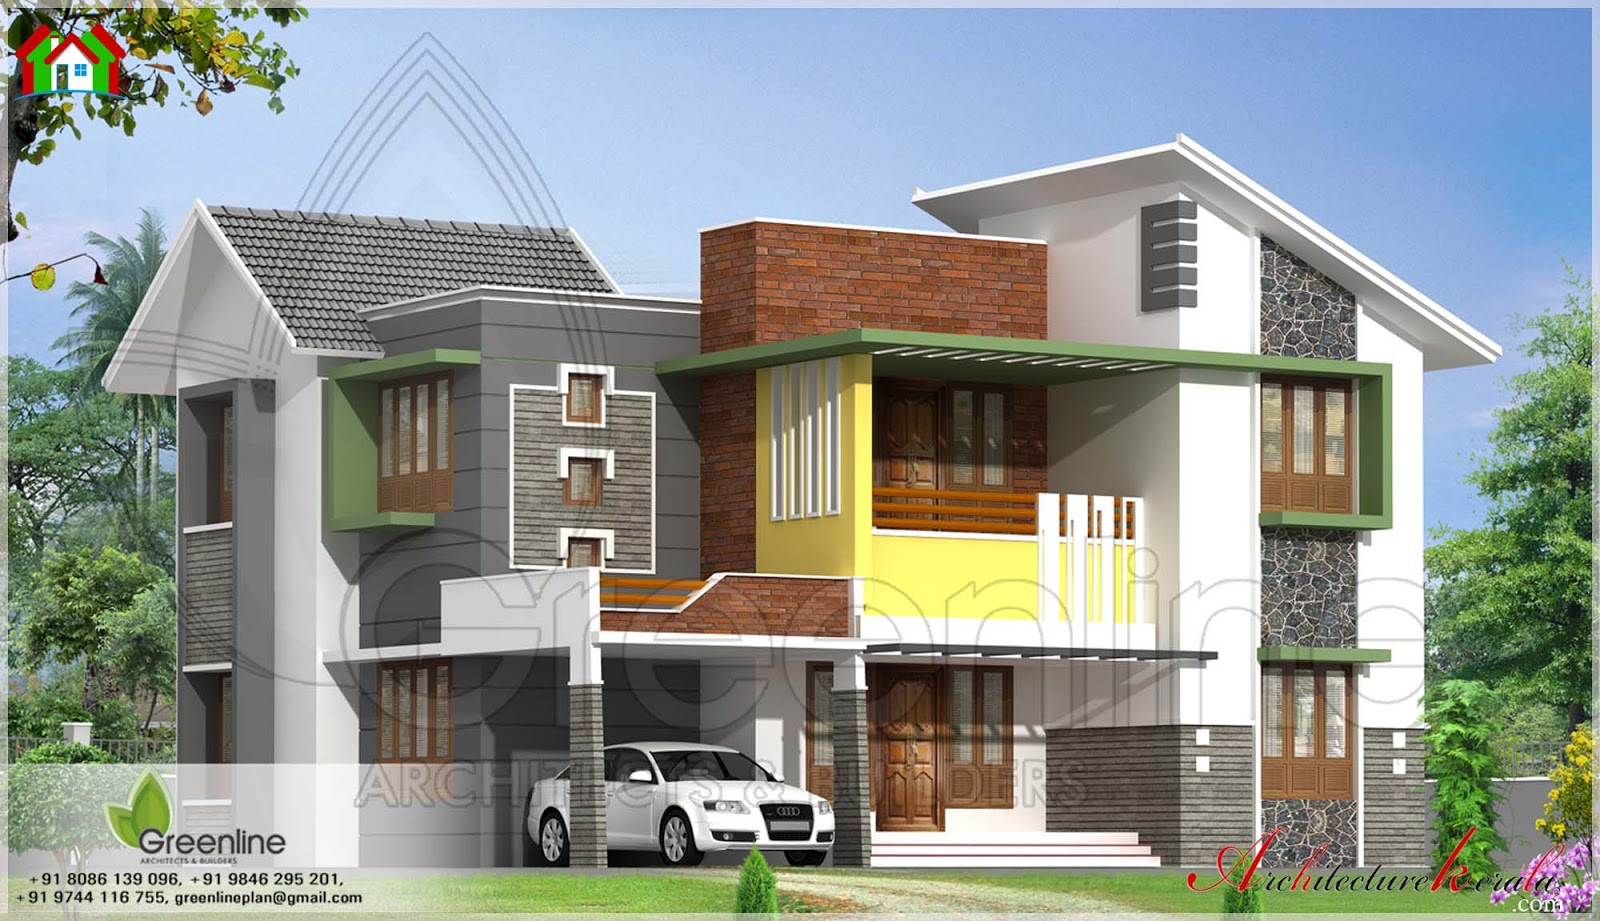 Modern style house elevation architecture kerala for Contemporary building elevation